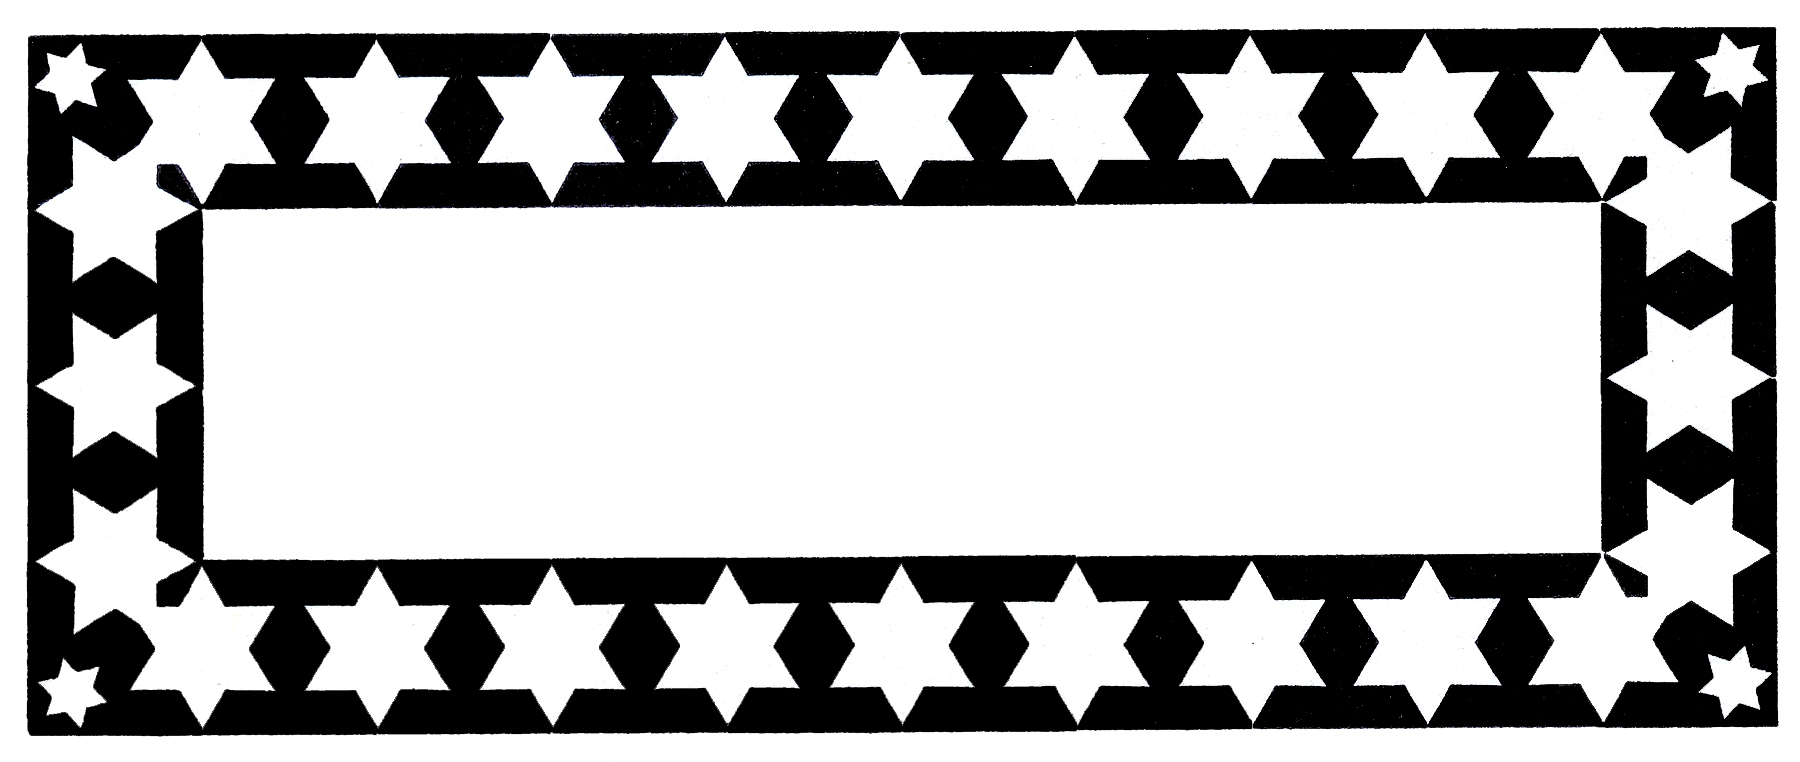 Black and White Starry Star - Free Clip Art   Star clipart, Free clip art,  Silhouette art